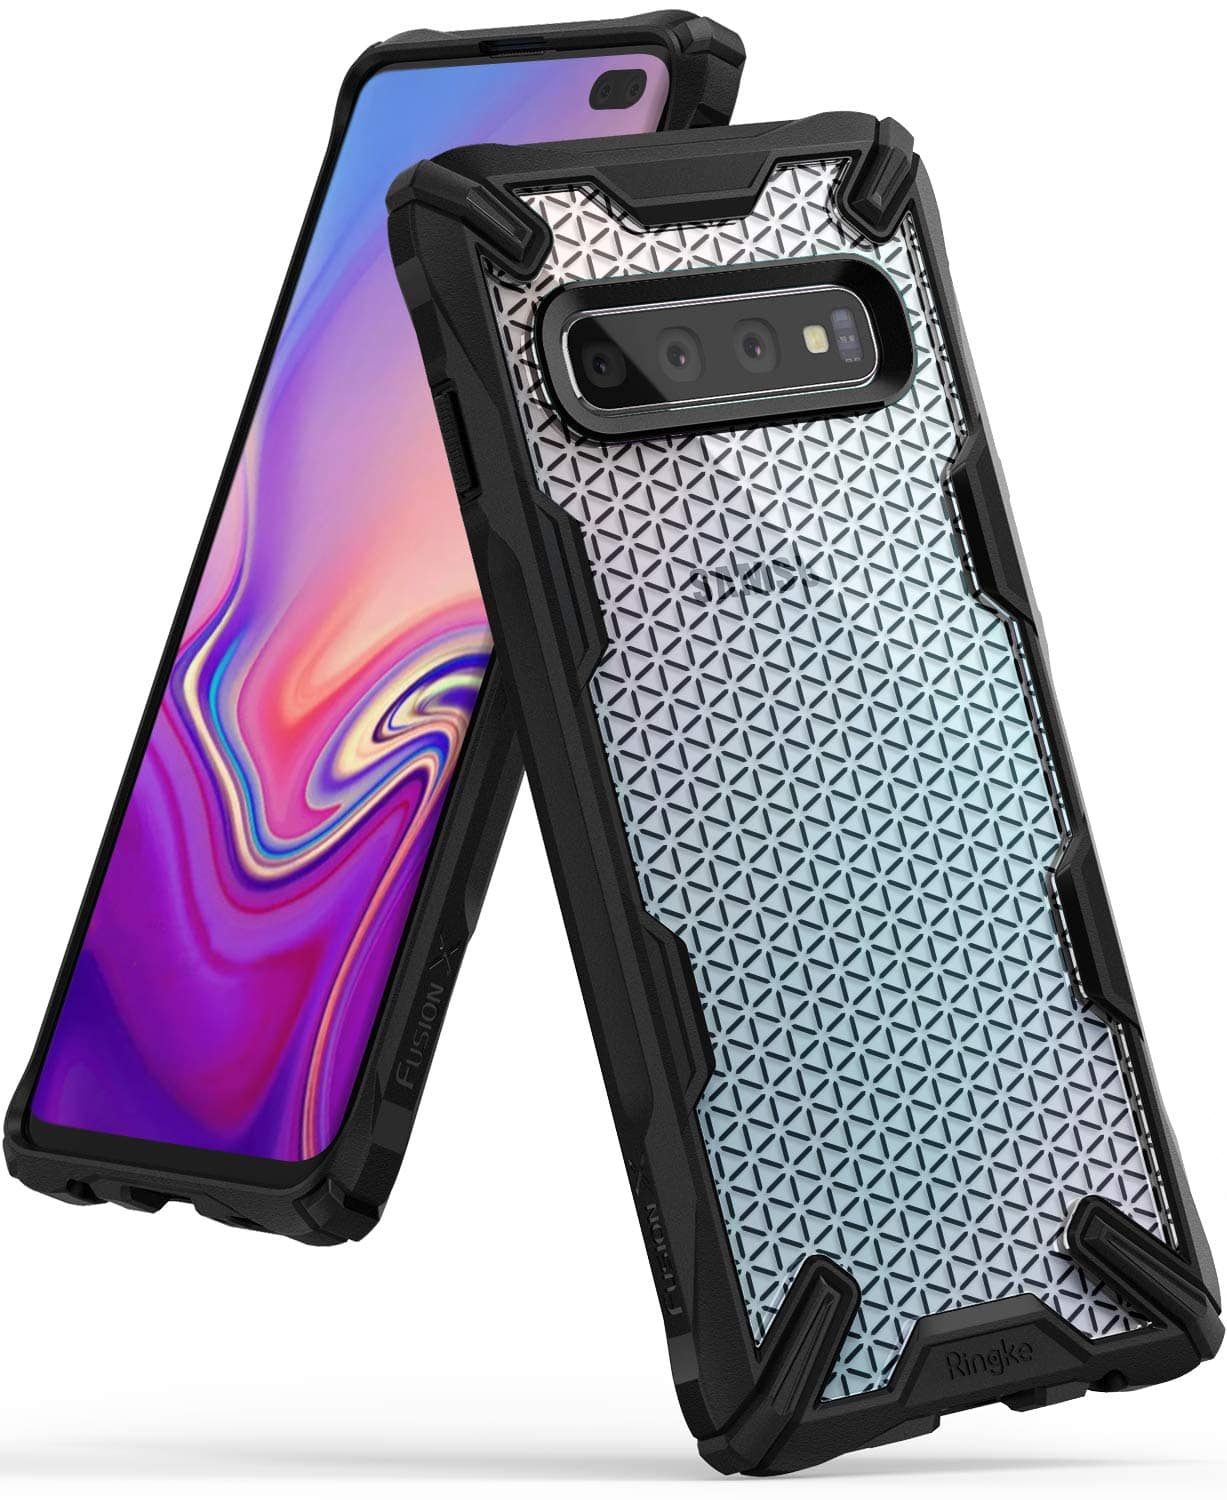 Ringke Cases for Galaxy S10 Plus / S10, iPhone XS Max / XR / XS / X, Google Pixel 3 / 3 XL. From $3.90